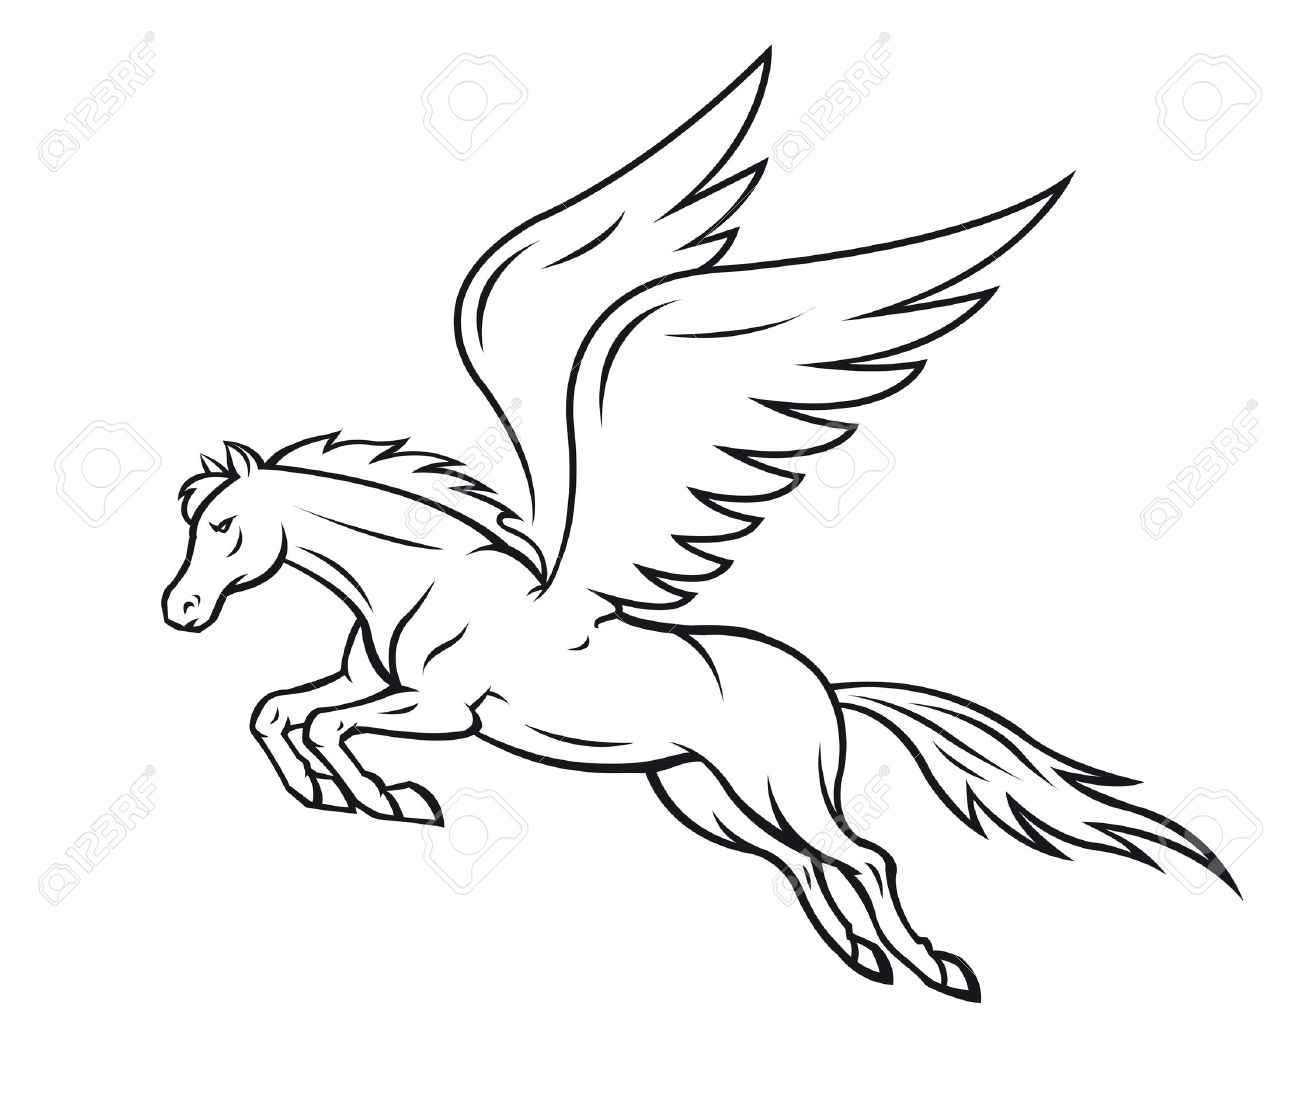 White Pegasus Horse With Wings Vector Illustration Royalty Free Cliparts Vectors And Stock Illustration Image 22473215